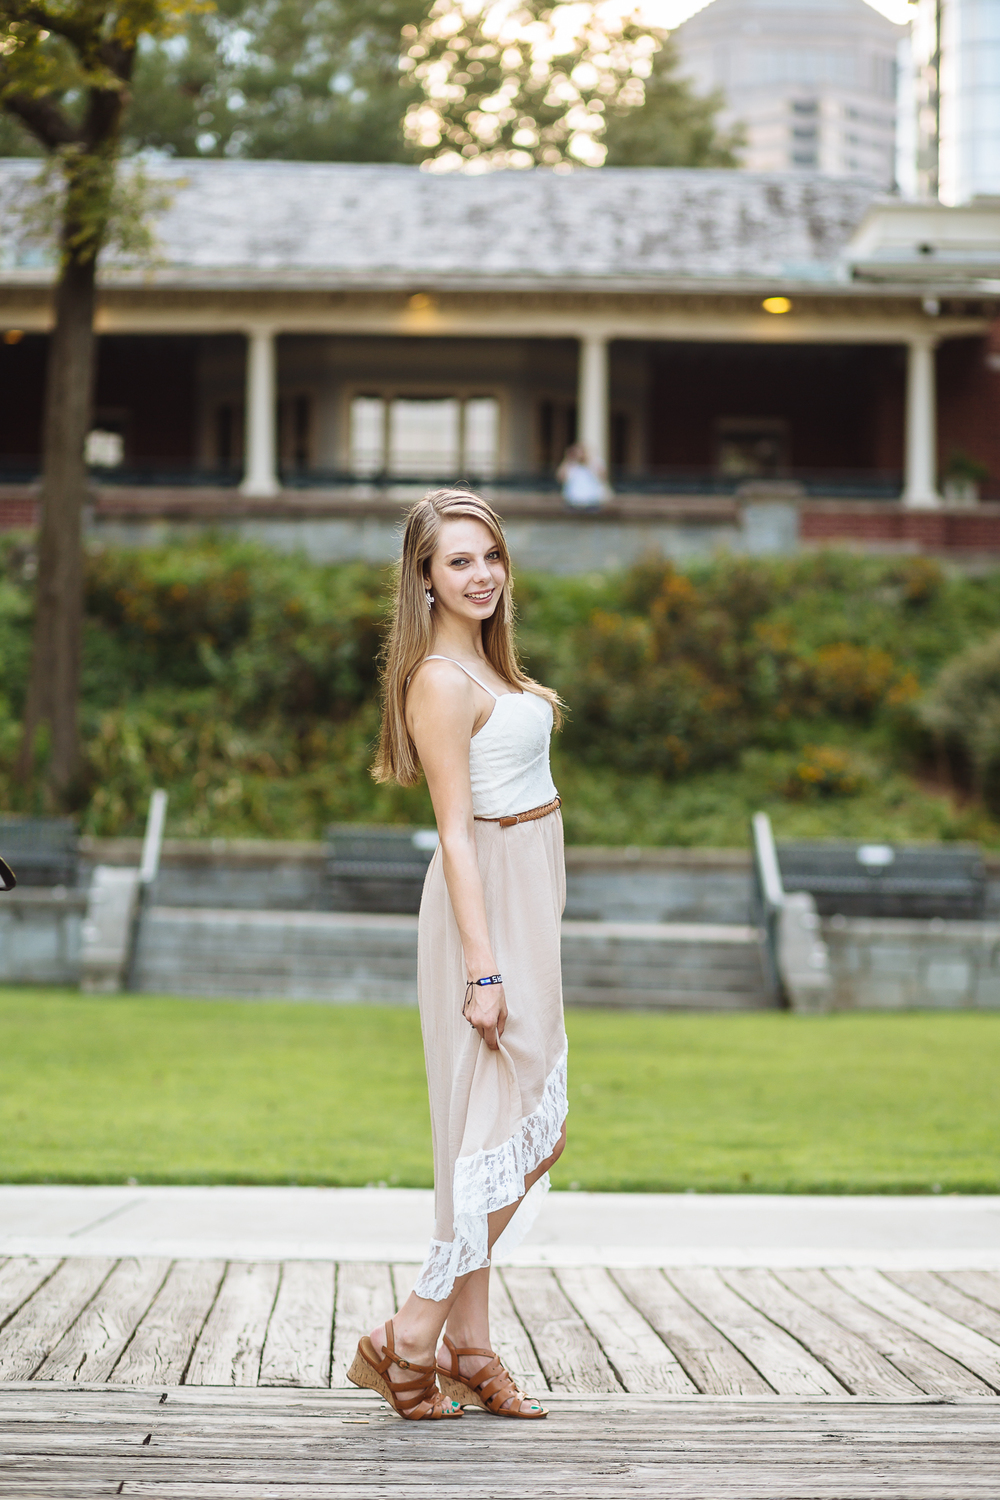 piedmont_park_atlanta_atl_photo_senior_portaits_erin_spruell_photography_34